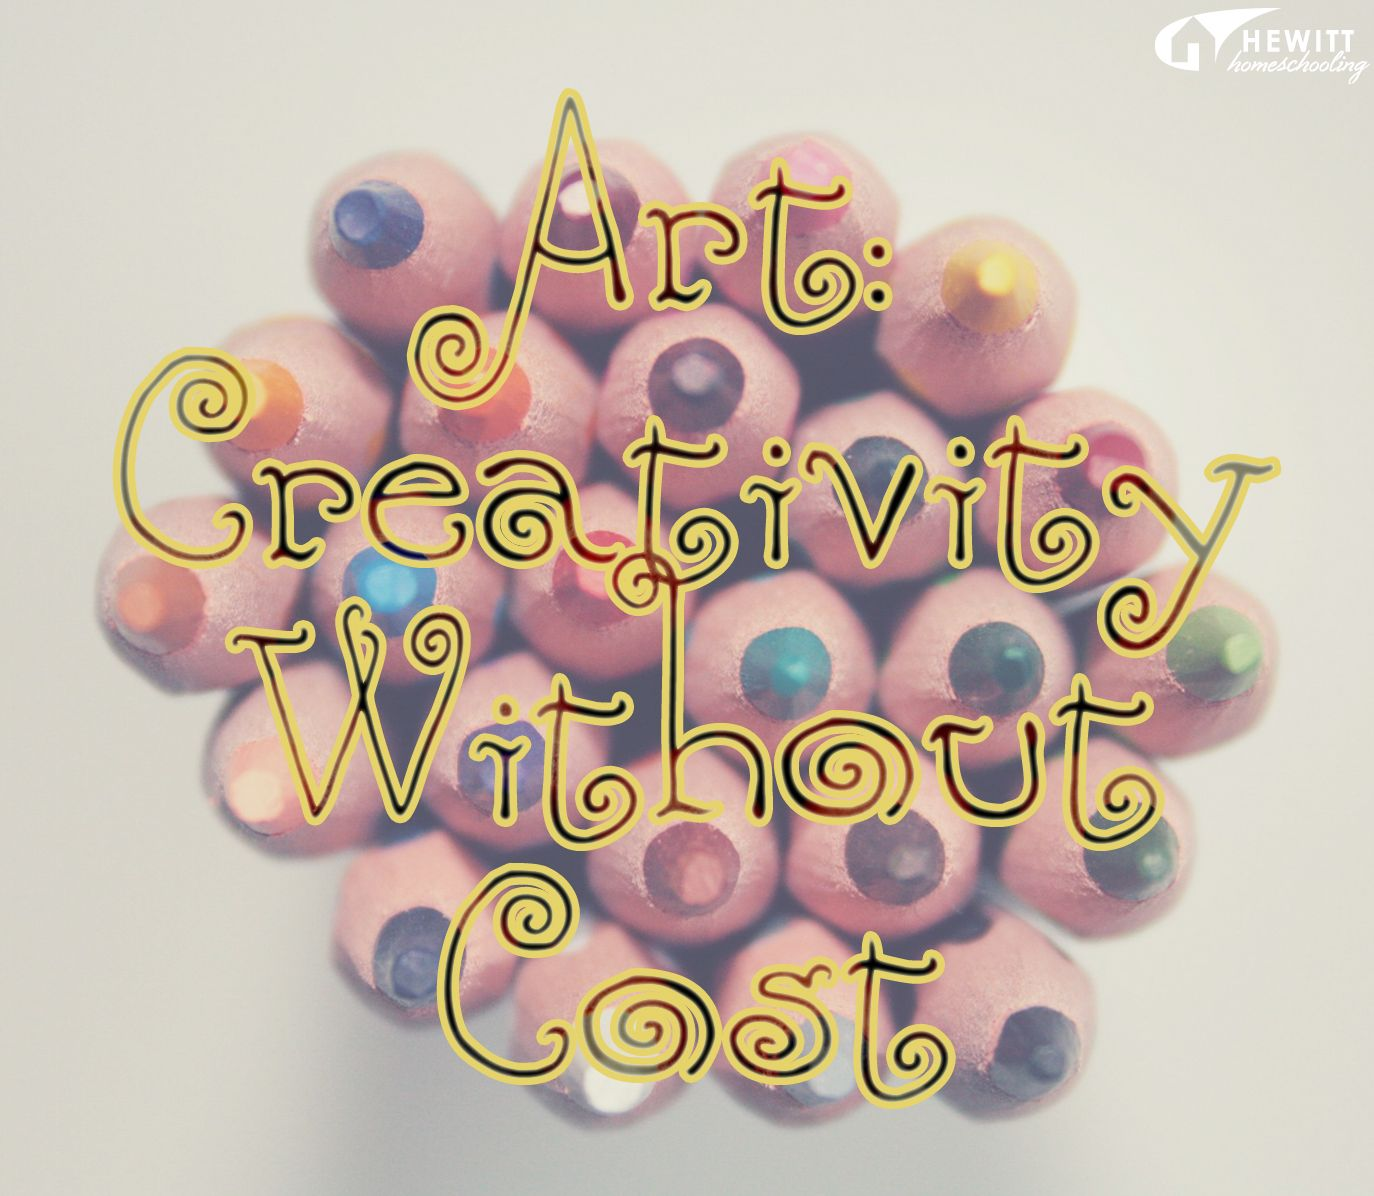 Art Creativity Without Cost Homeschooling